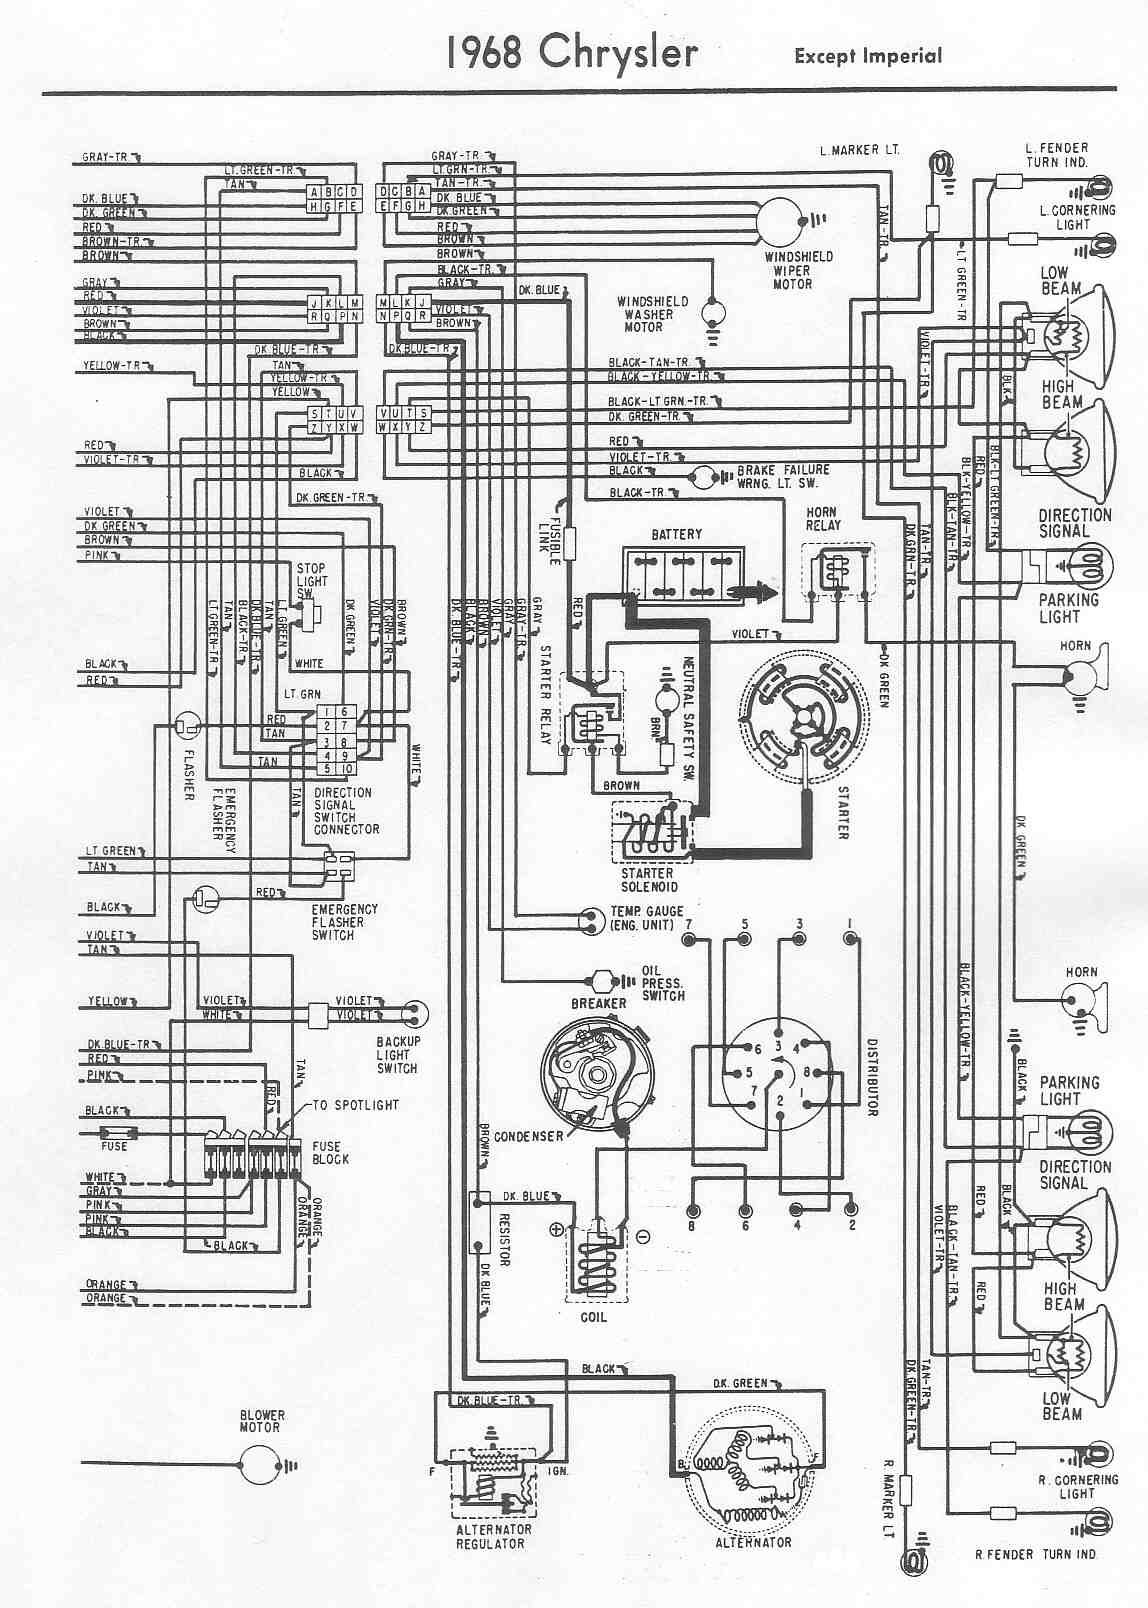 [DIAGRAM_4PO]  CHRYSLER - Car PDF Manual, Wiring Diagram & Fault Codes DTC | 1966 Chrysler New Yorker Wiring Diagram |  | automotive-manuals.net